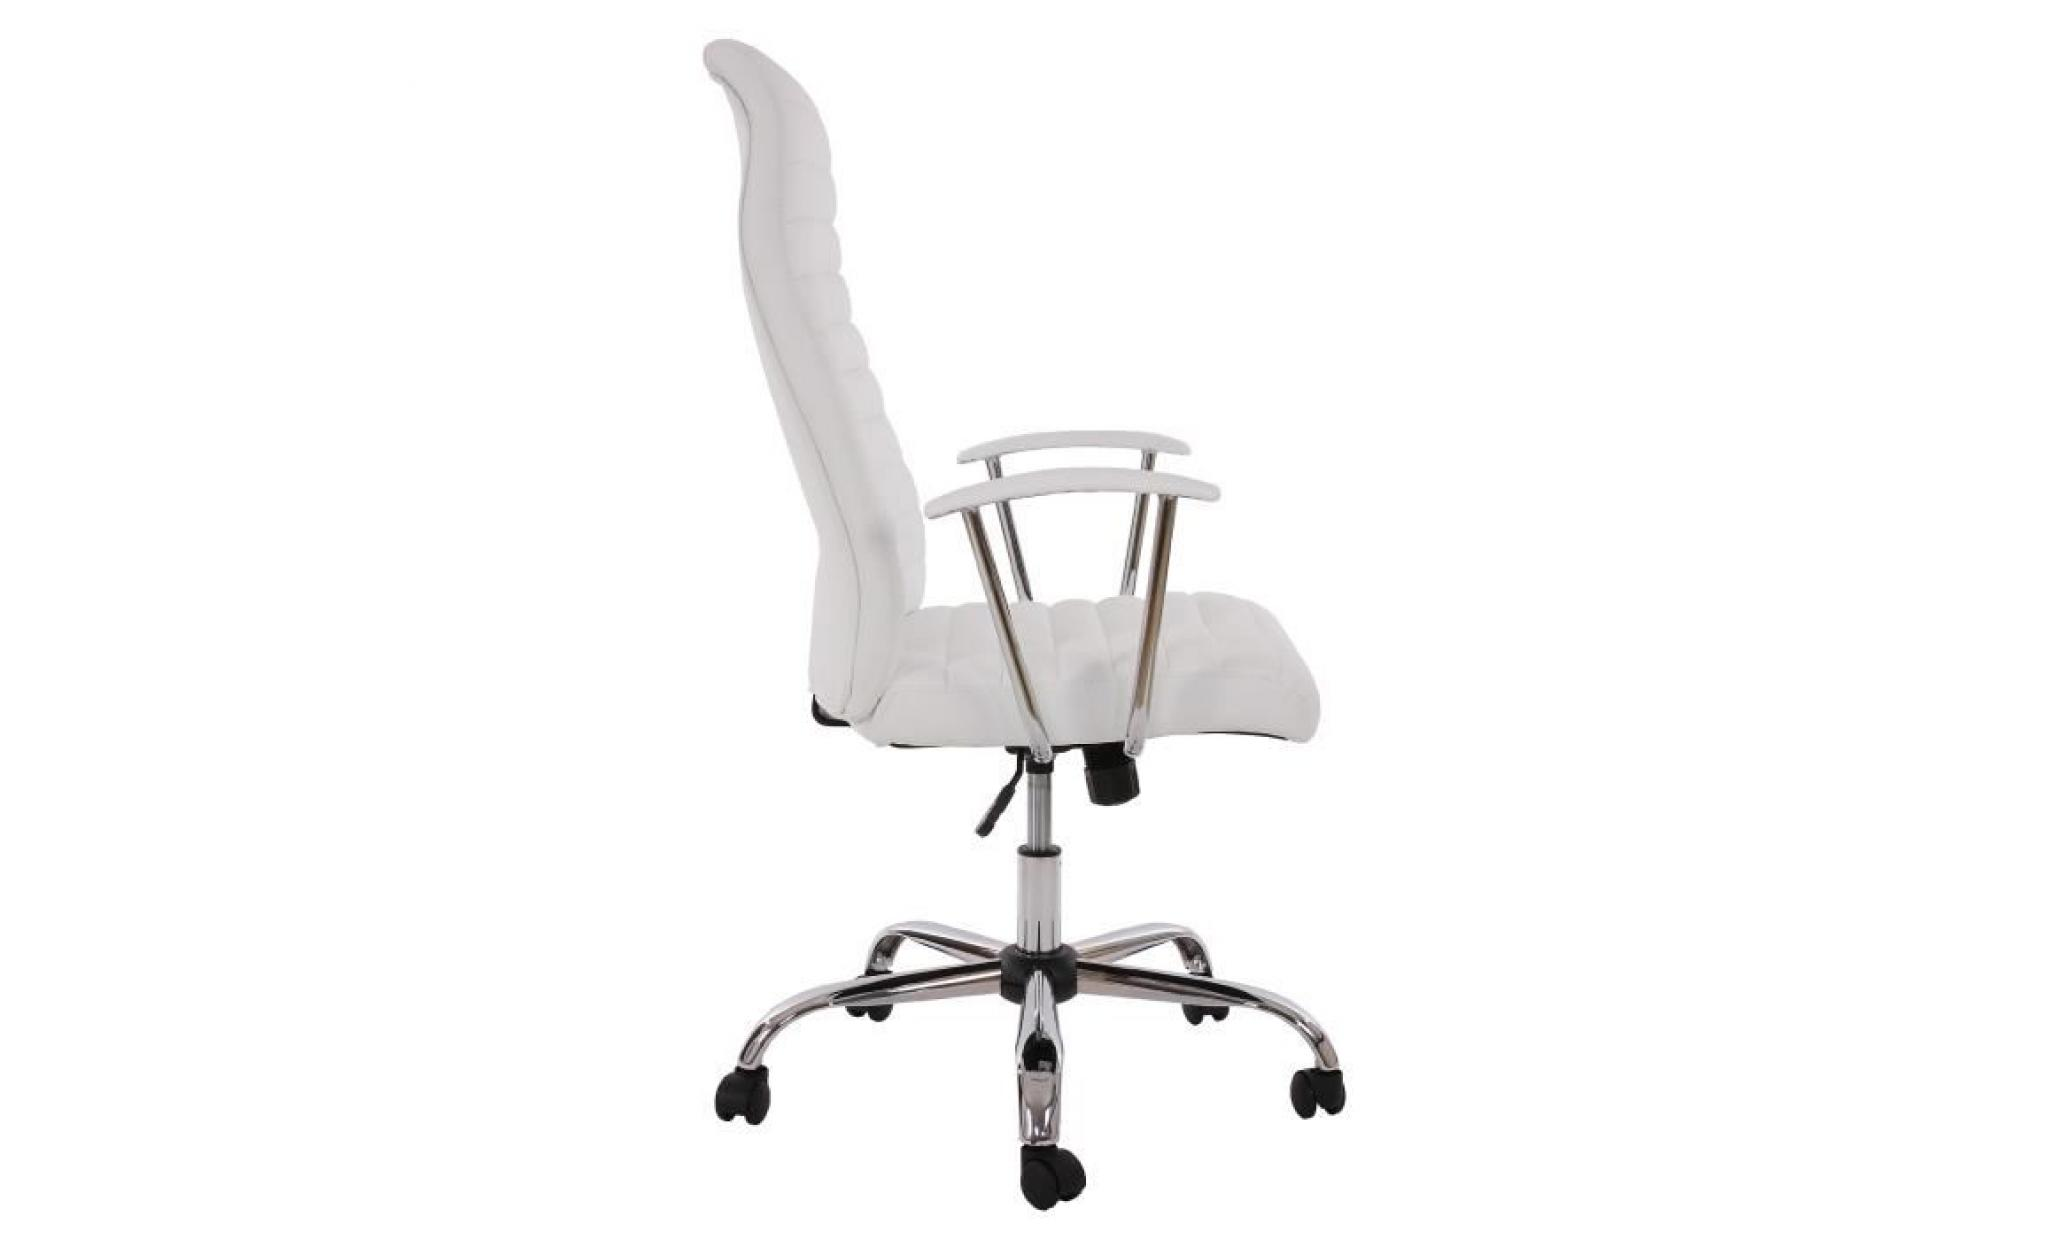 fauteuil chaise de bureau cagliari ergonomique pu blanc. Black Bedroom Furniture Sets. Home Design Ideas